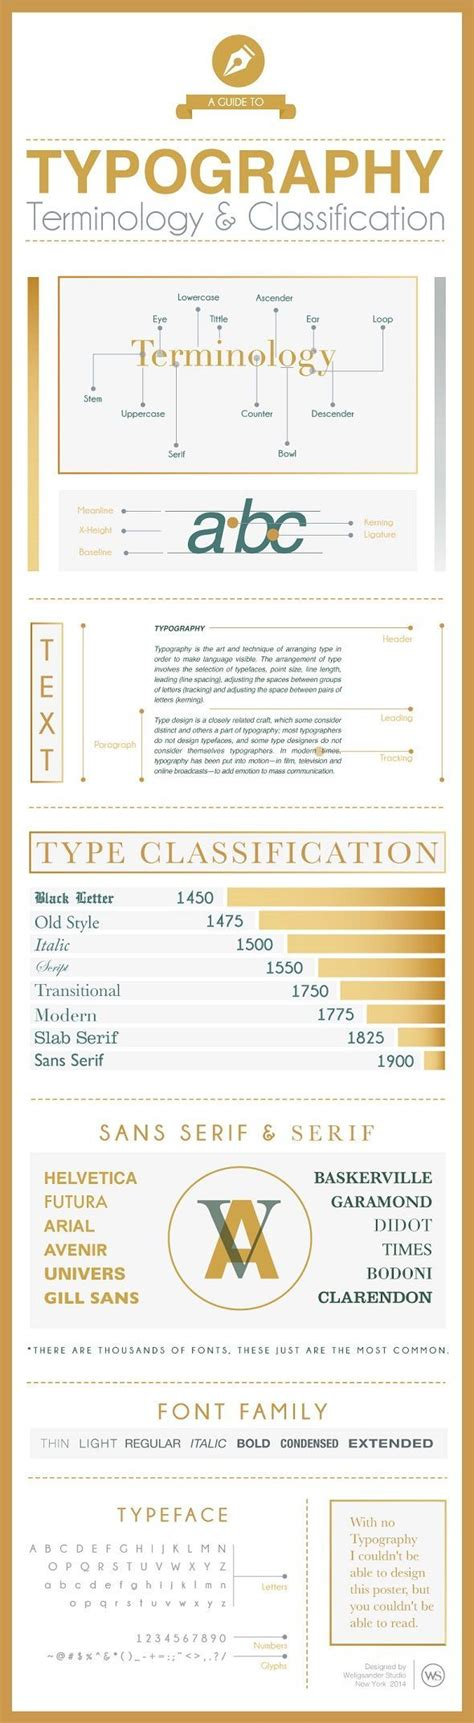 302 best fonts and typography images on pinterest calligraphy fonts and graphics